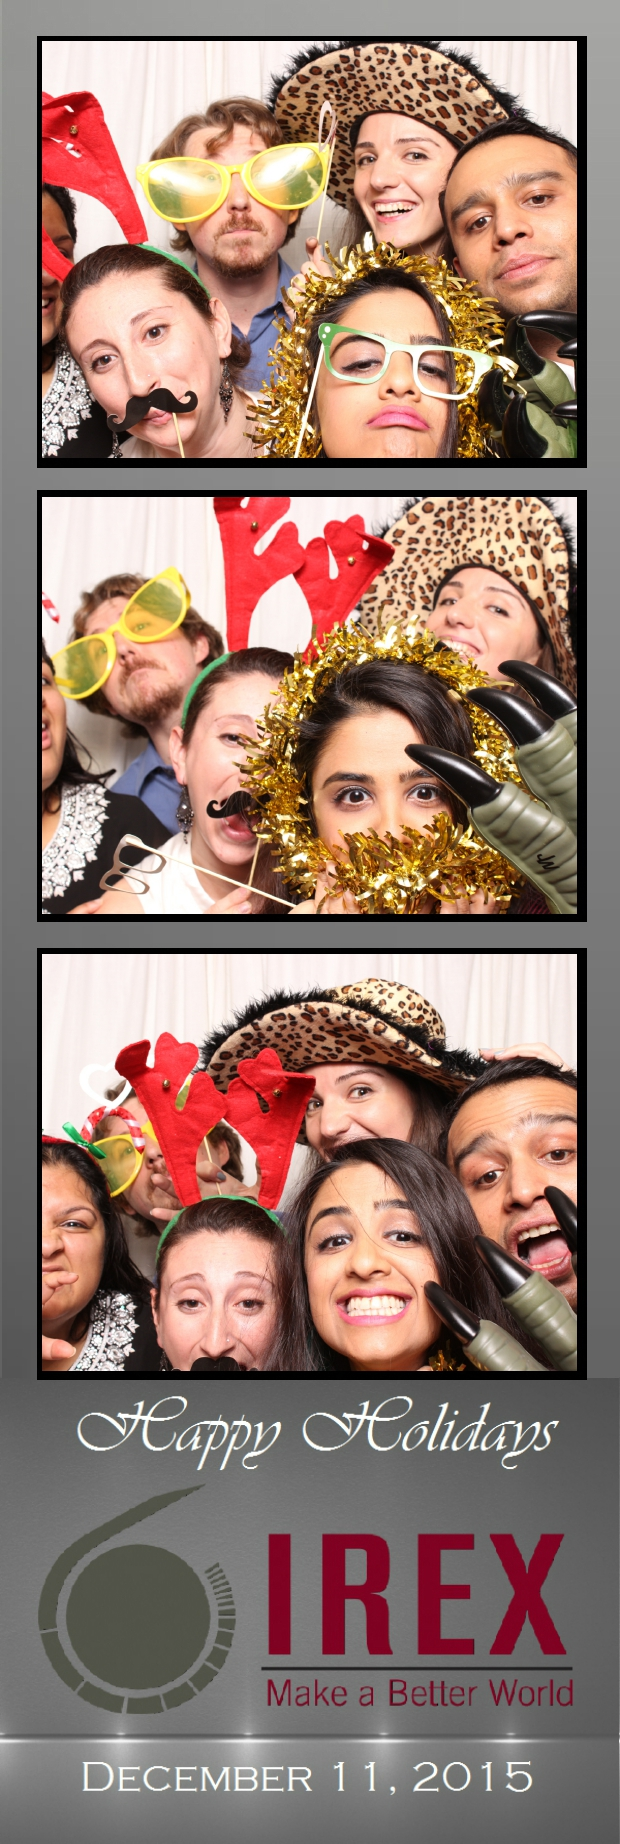 Guest House Events Photo Booth Strips IREX (62).jpg